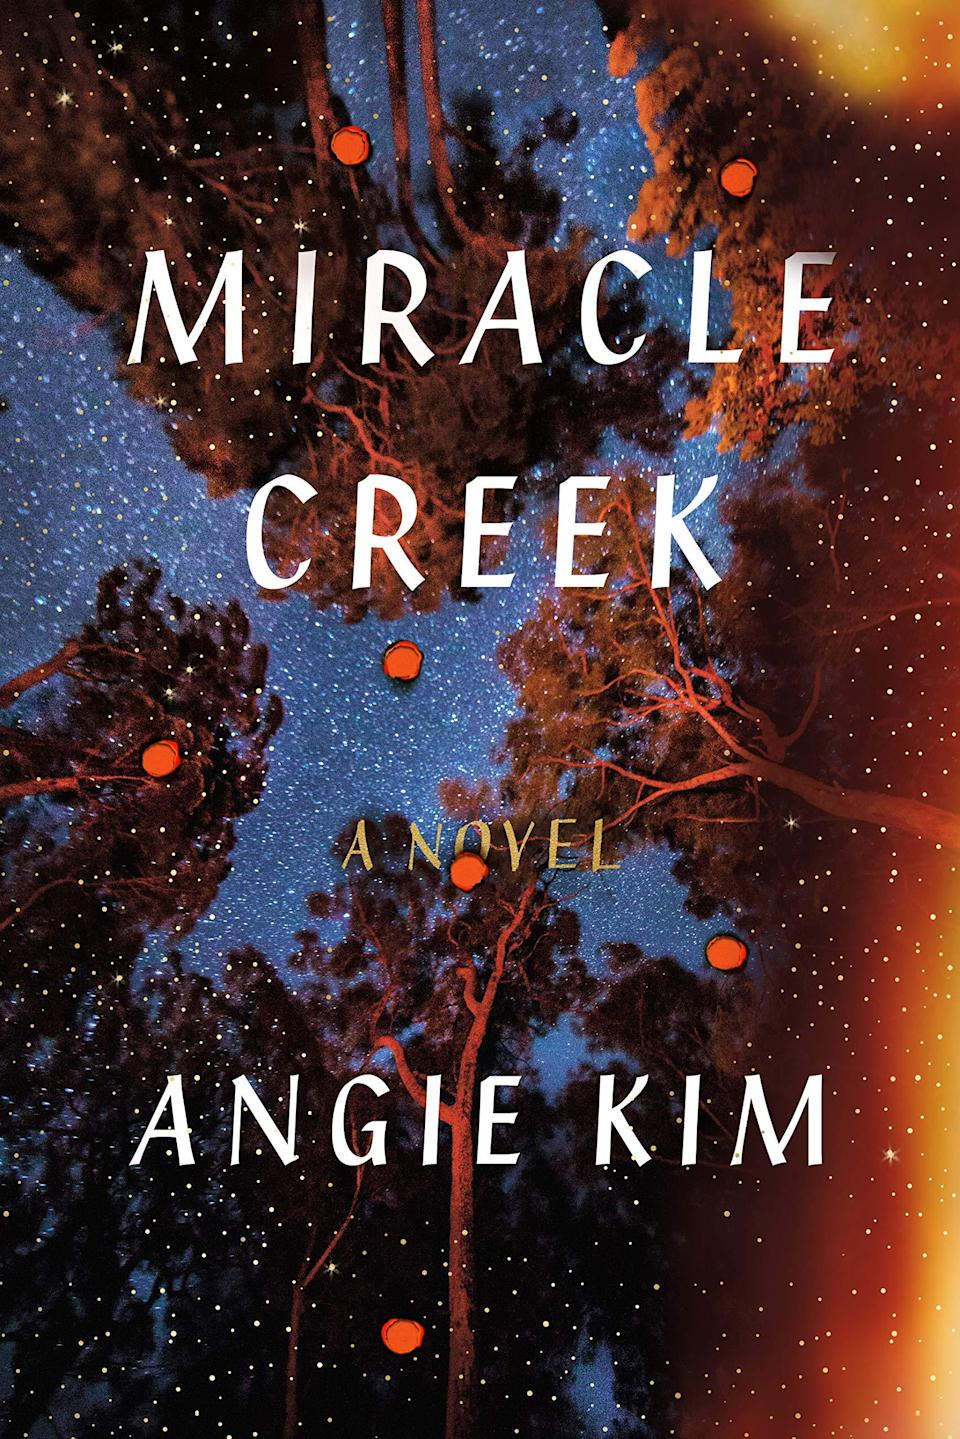 Angie Kim's <em>Miracle Creek</em> is both a gripping page-turner and a thoughtful, honest exploration of parents of children with special needs and immigrants. This story is about the tragedy that unfolds when an experimental medical facility owned by a Korean family catches on fire one evening, killing two people and severely injuring several others. It's perfectly paced and filled with wisdom and compassion. You won't want to miss this one. —<em>L.K.</em>